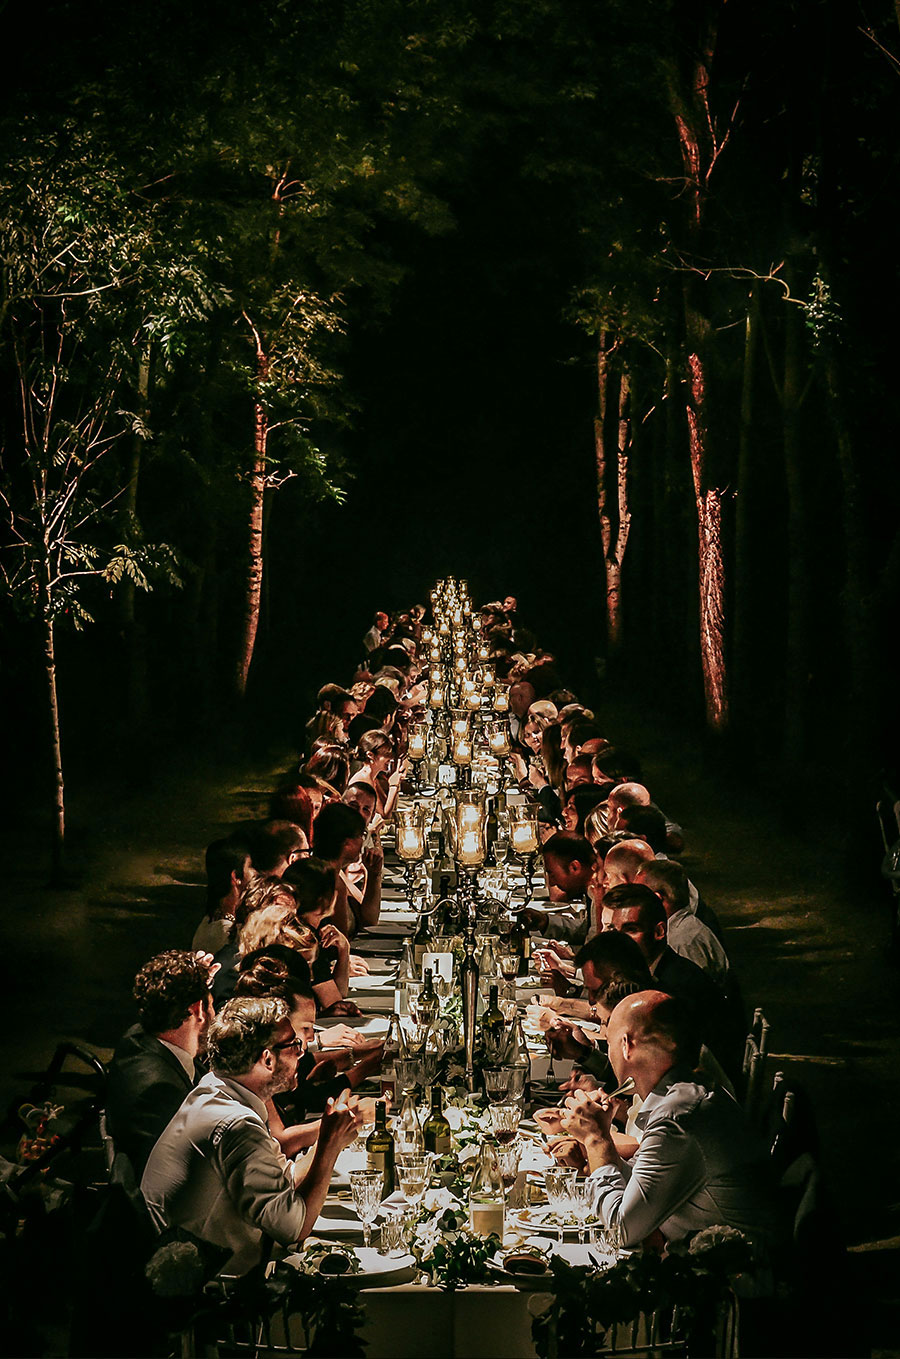 A Wonderful Garden Wedding With Dinner In The Woods!0056